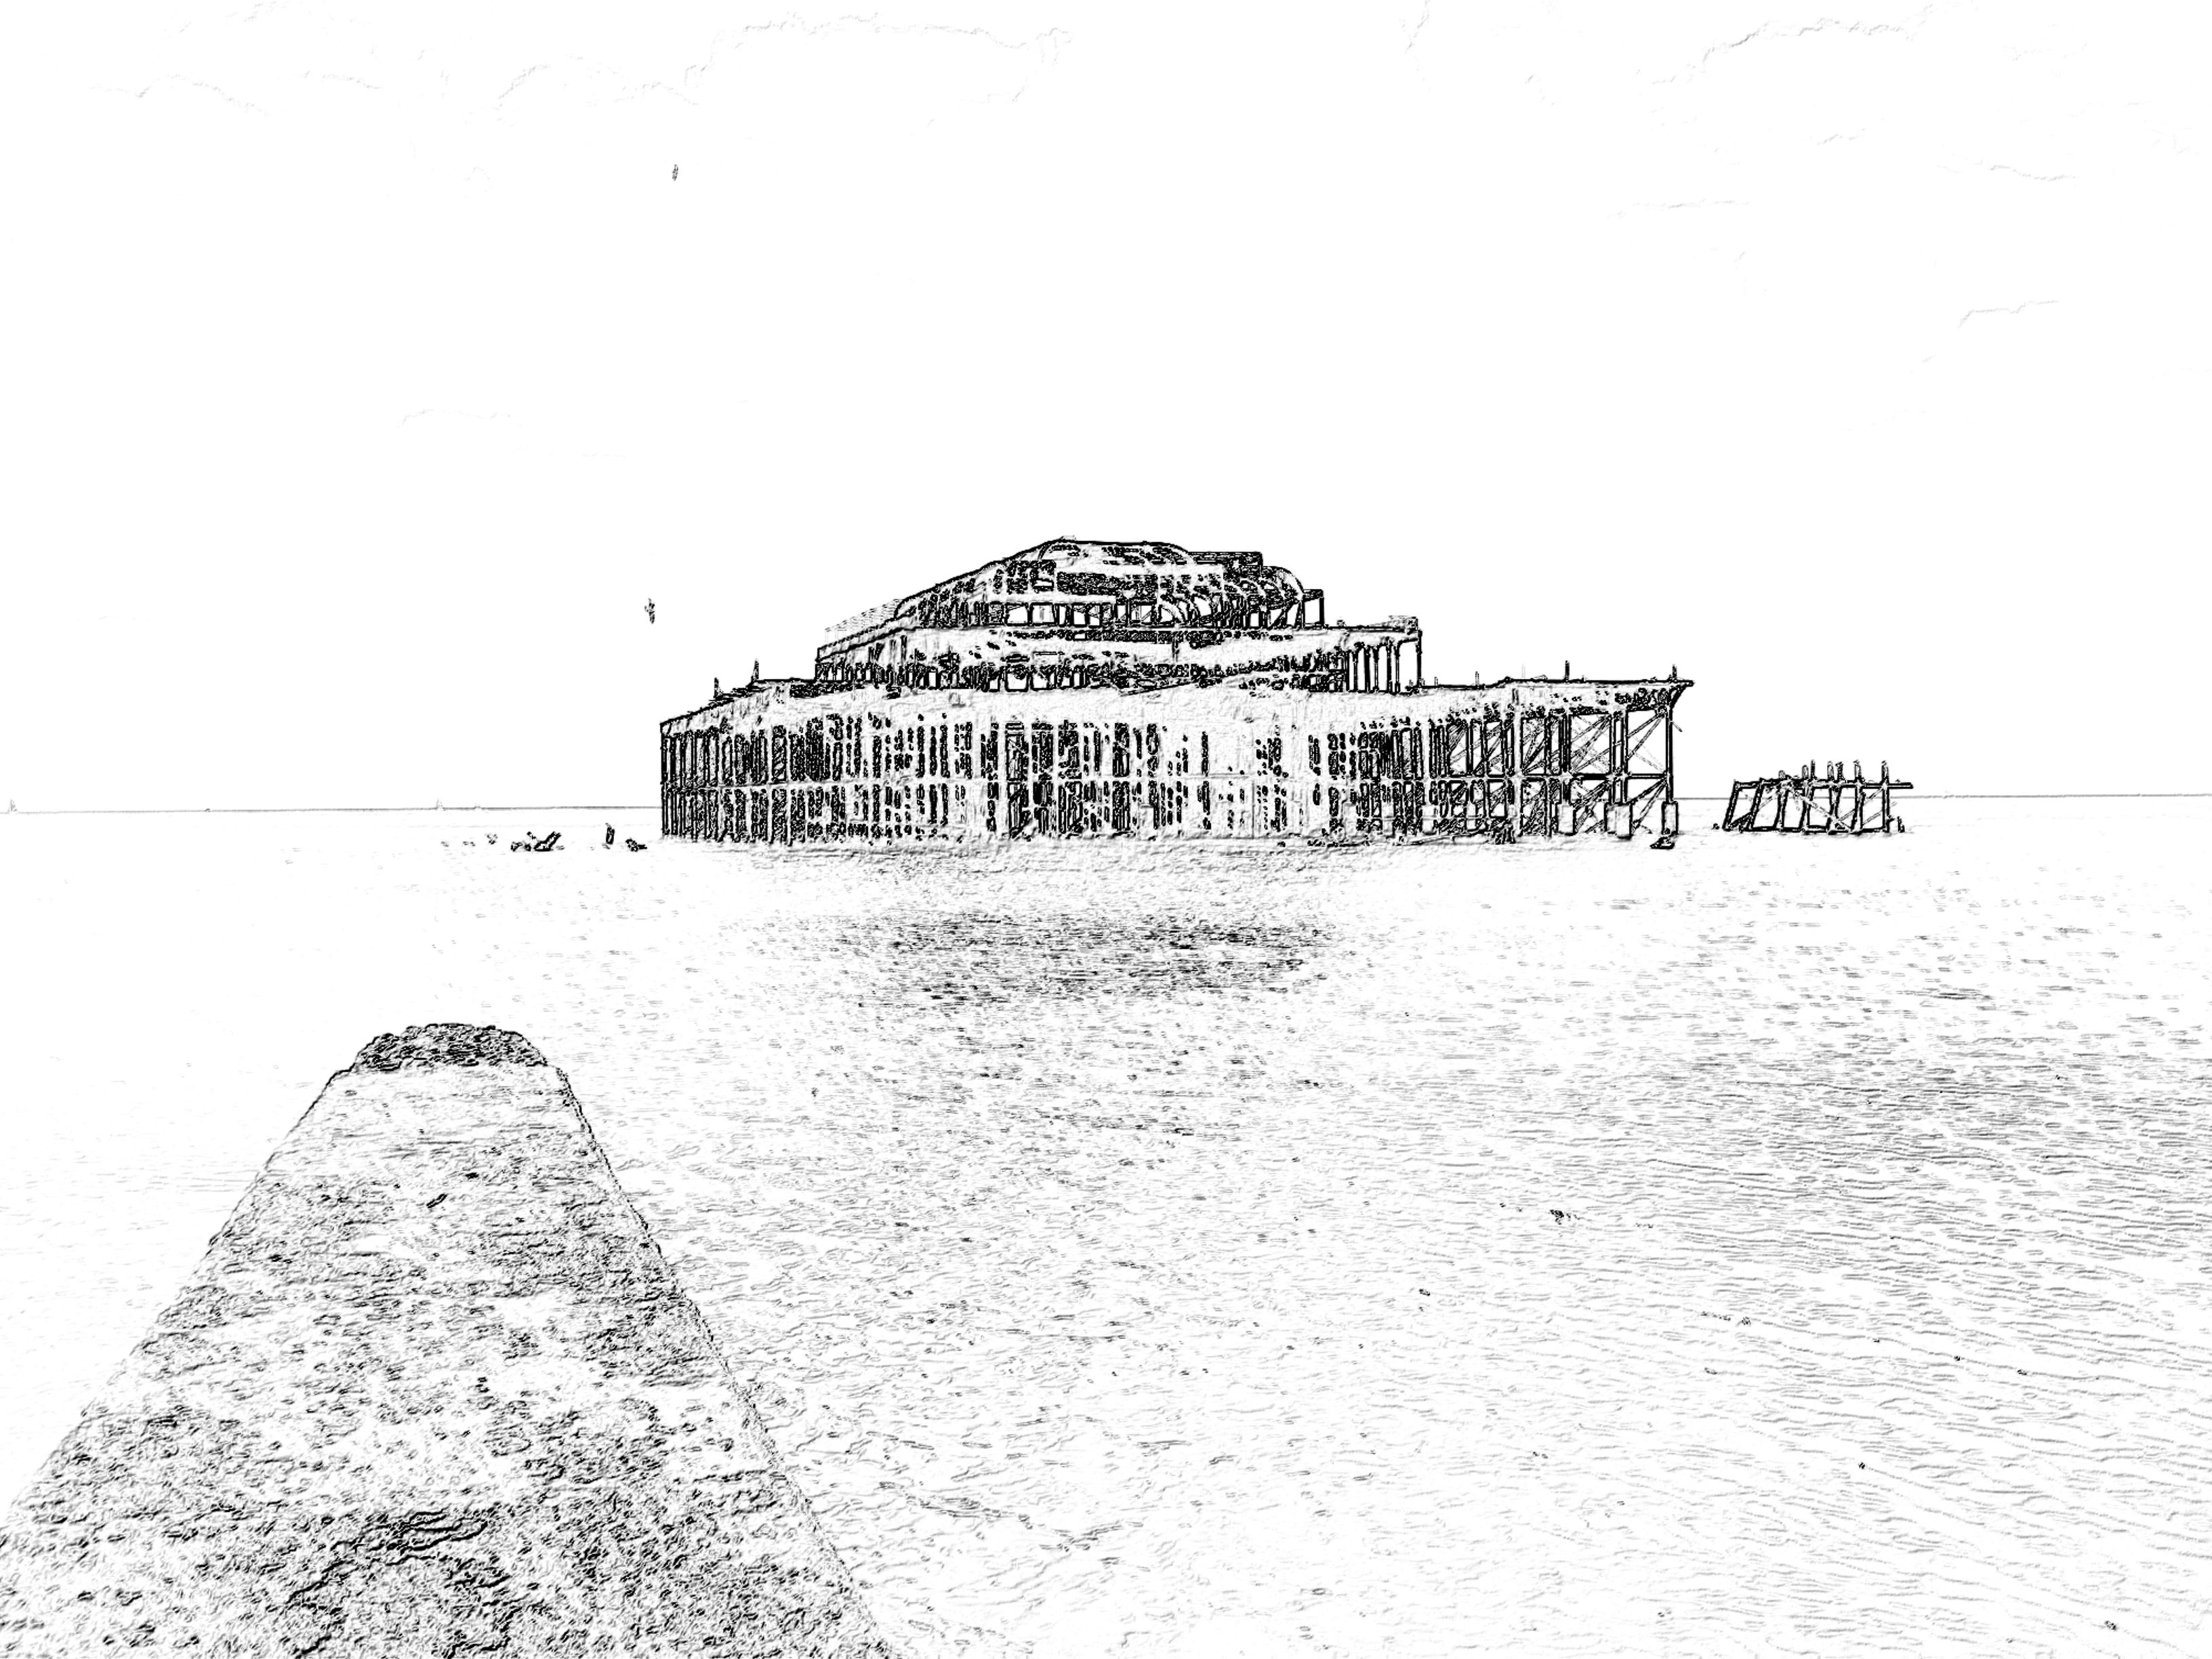 Brighton burnt out Pier, England.